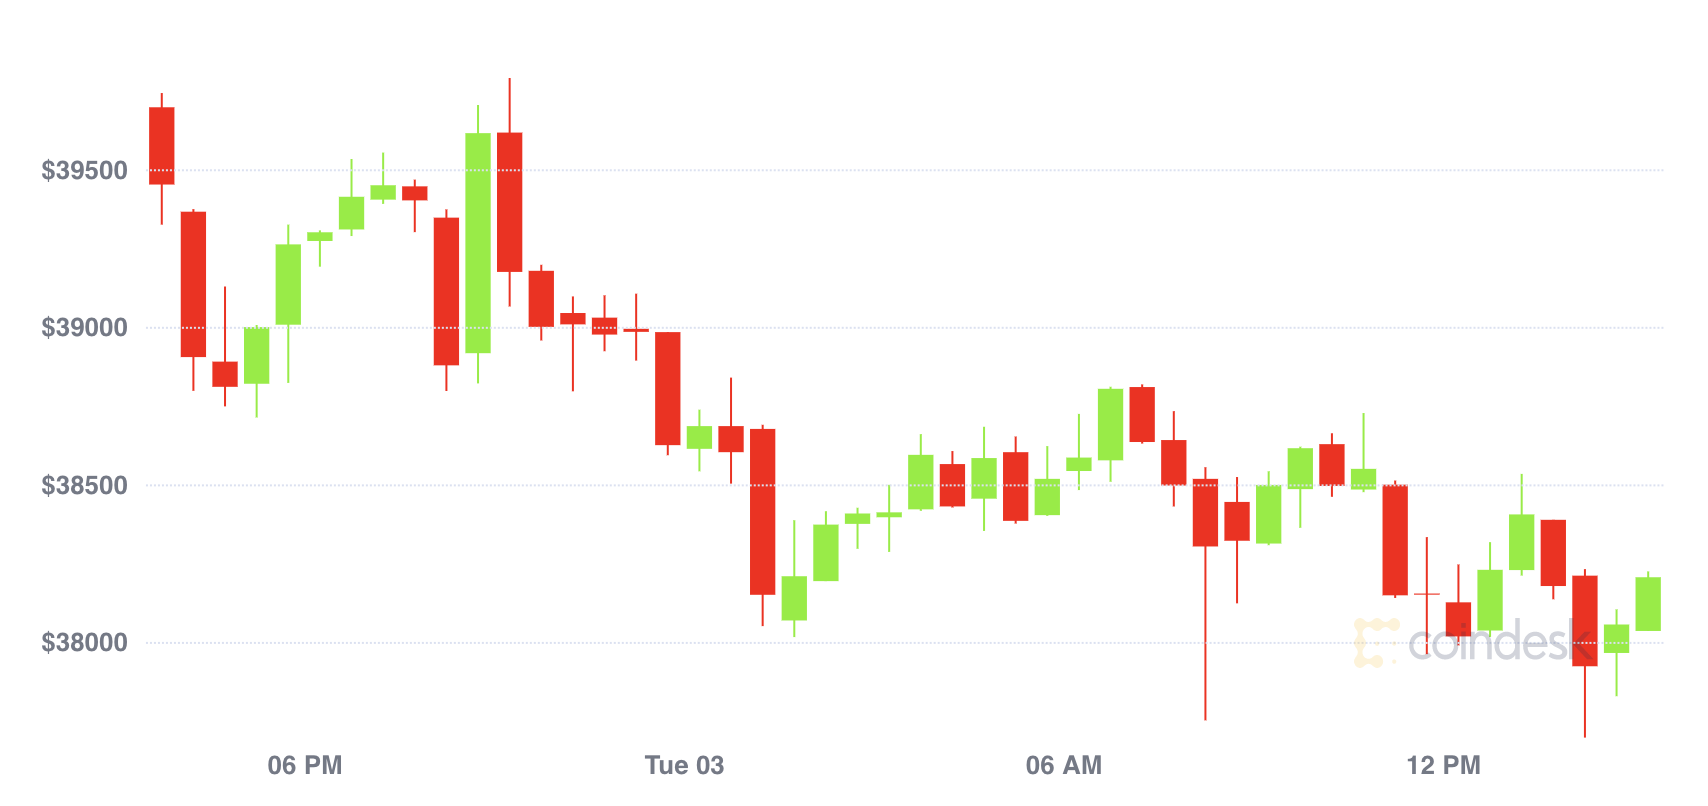 Market Wrap: Bitcoin in Pullback Mode as Regulatory Concerns Rise